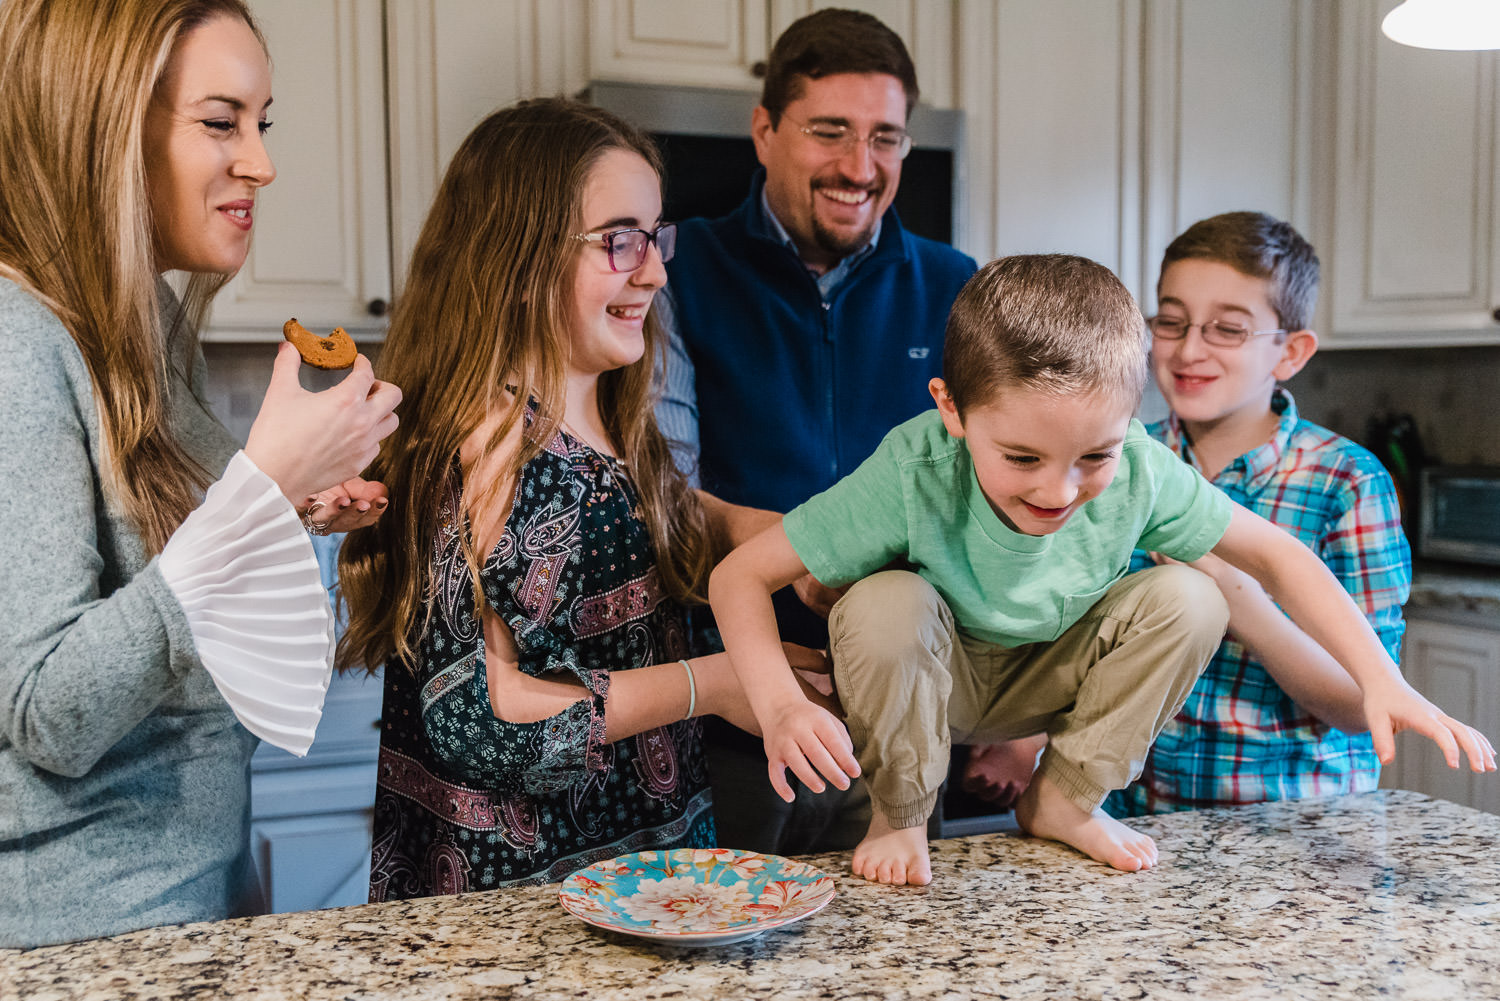 A family laughs together in the kitchen.